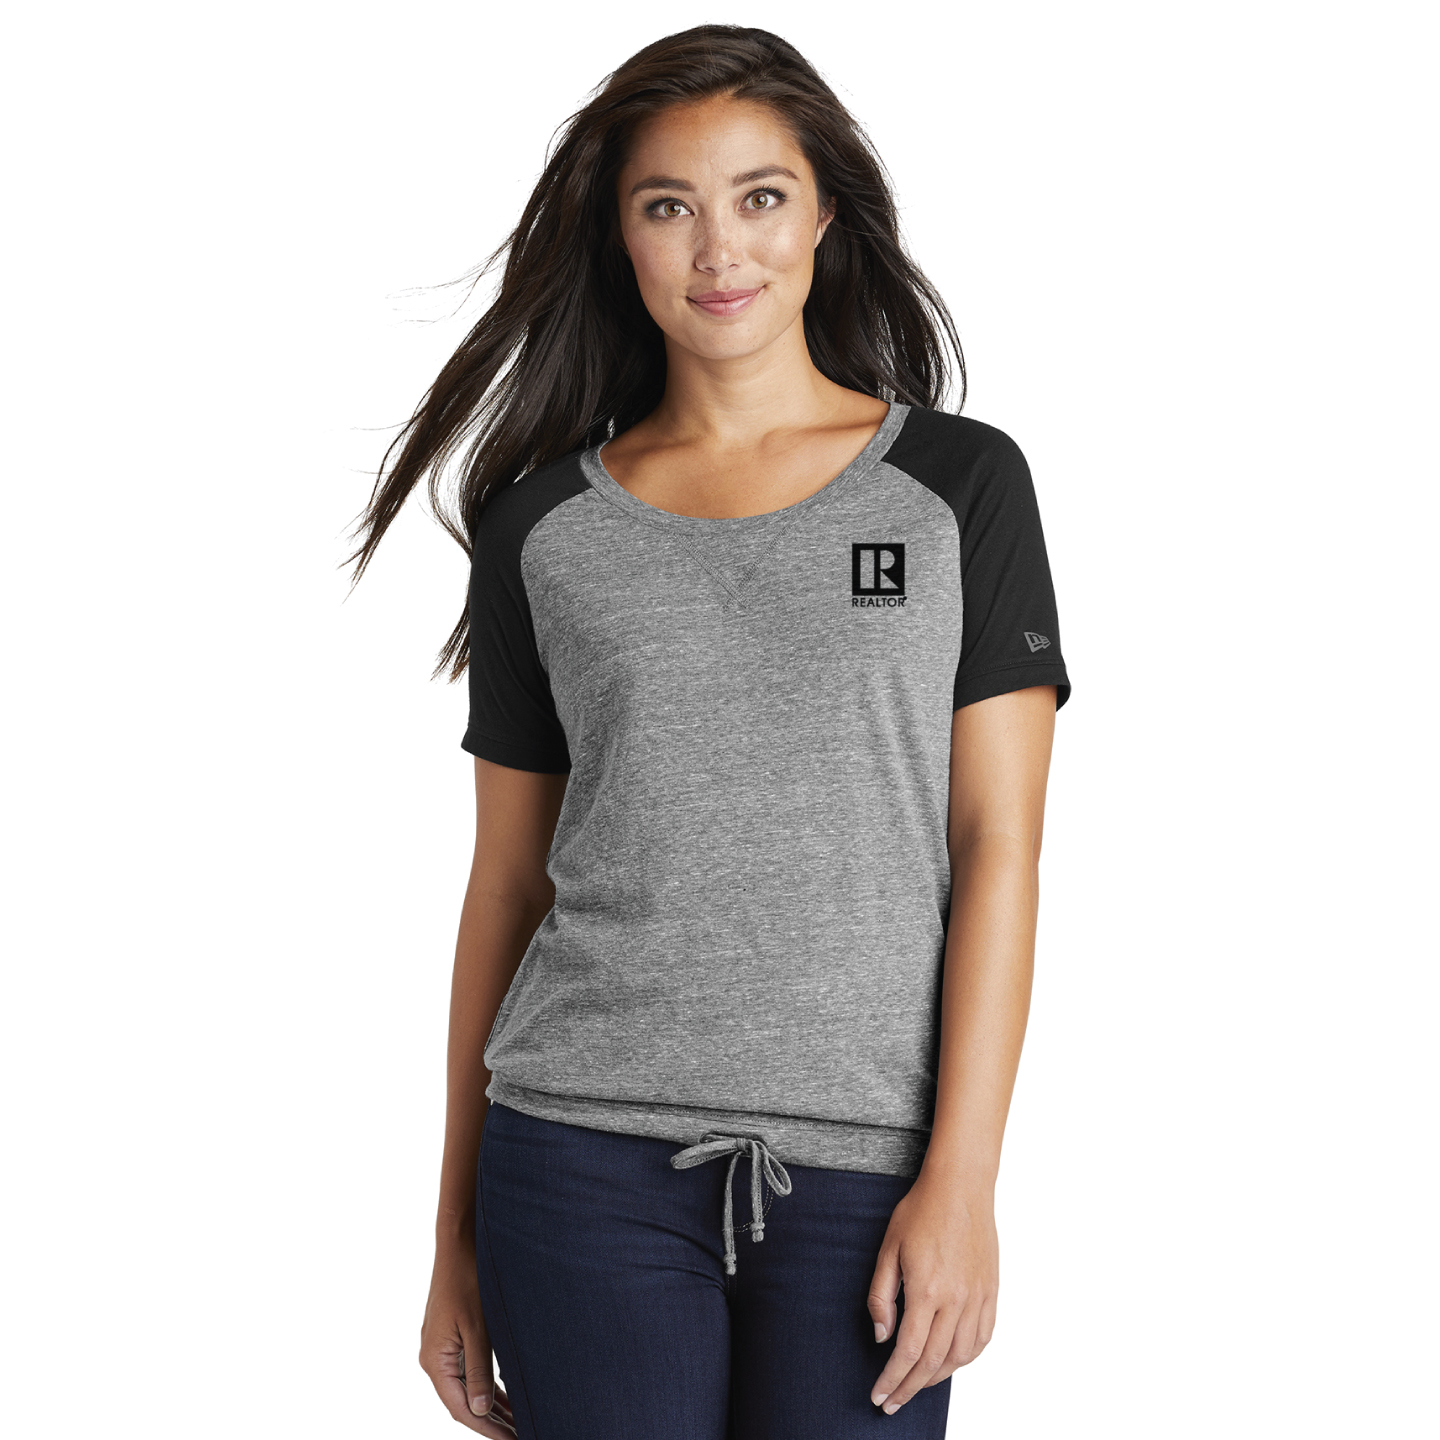 New Era ® Ladies Tri-Blend Performance Cinch Tee Tee, T-shirt, Tees, T-shirts, Flattering, Sport, Fitness, New Era